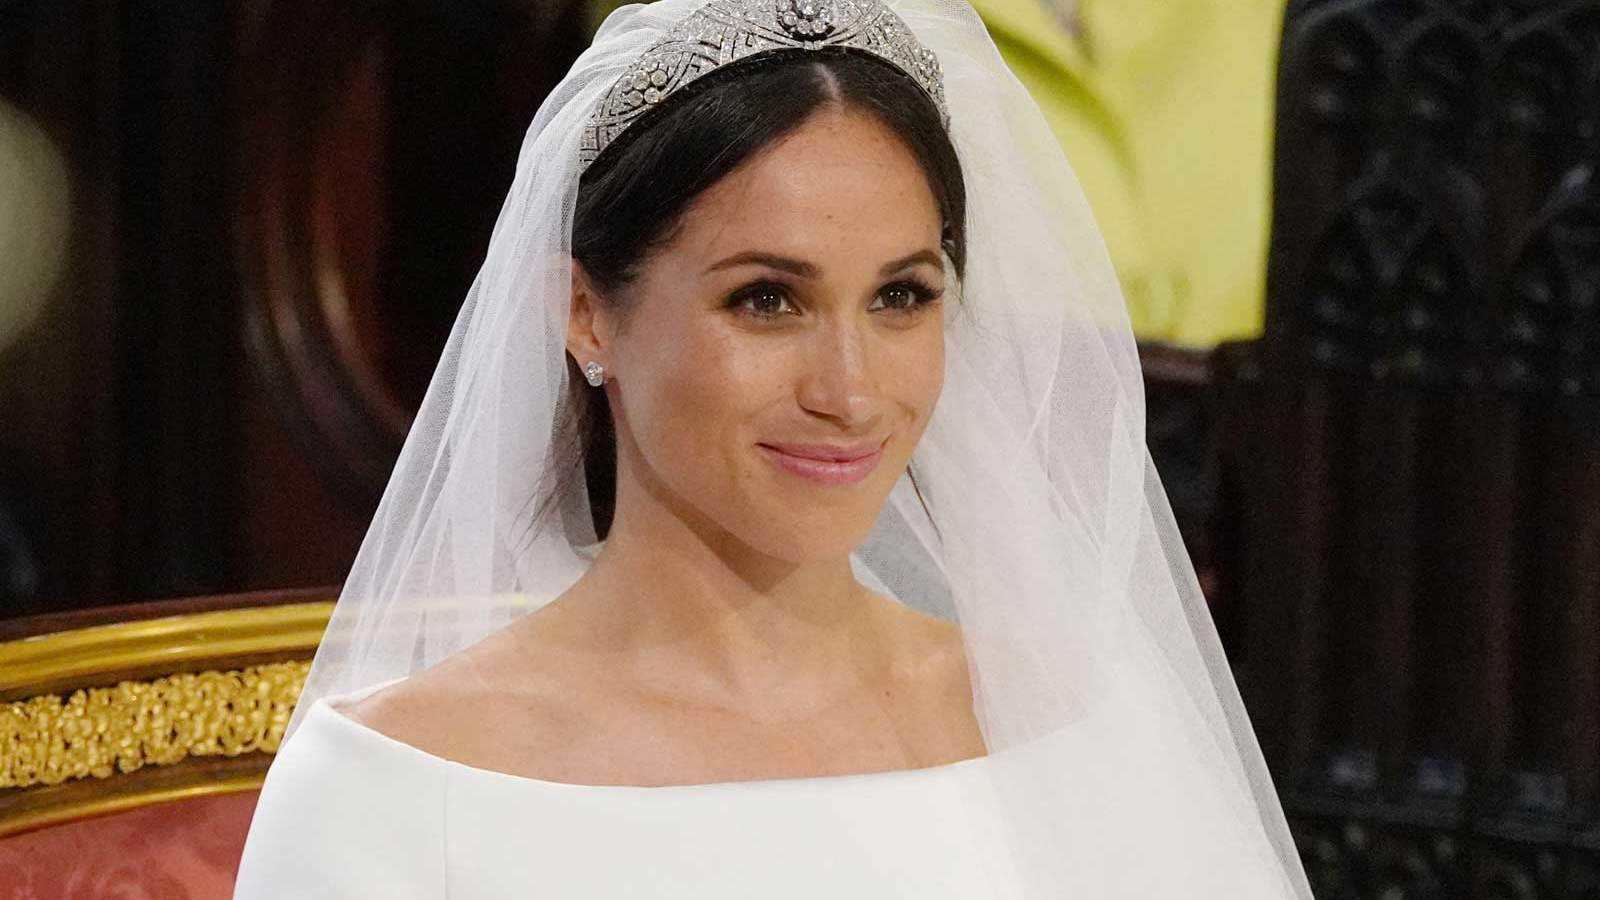 Meghan Markle stands at the altar during her wedding in St George's Chapel at Windsor Castle on May 19, 2018 in Windsor, England.